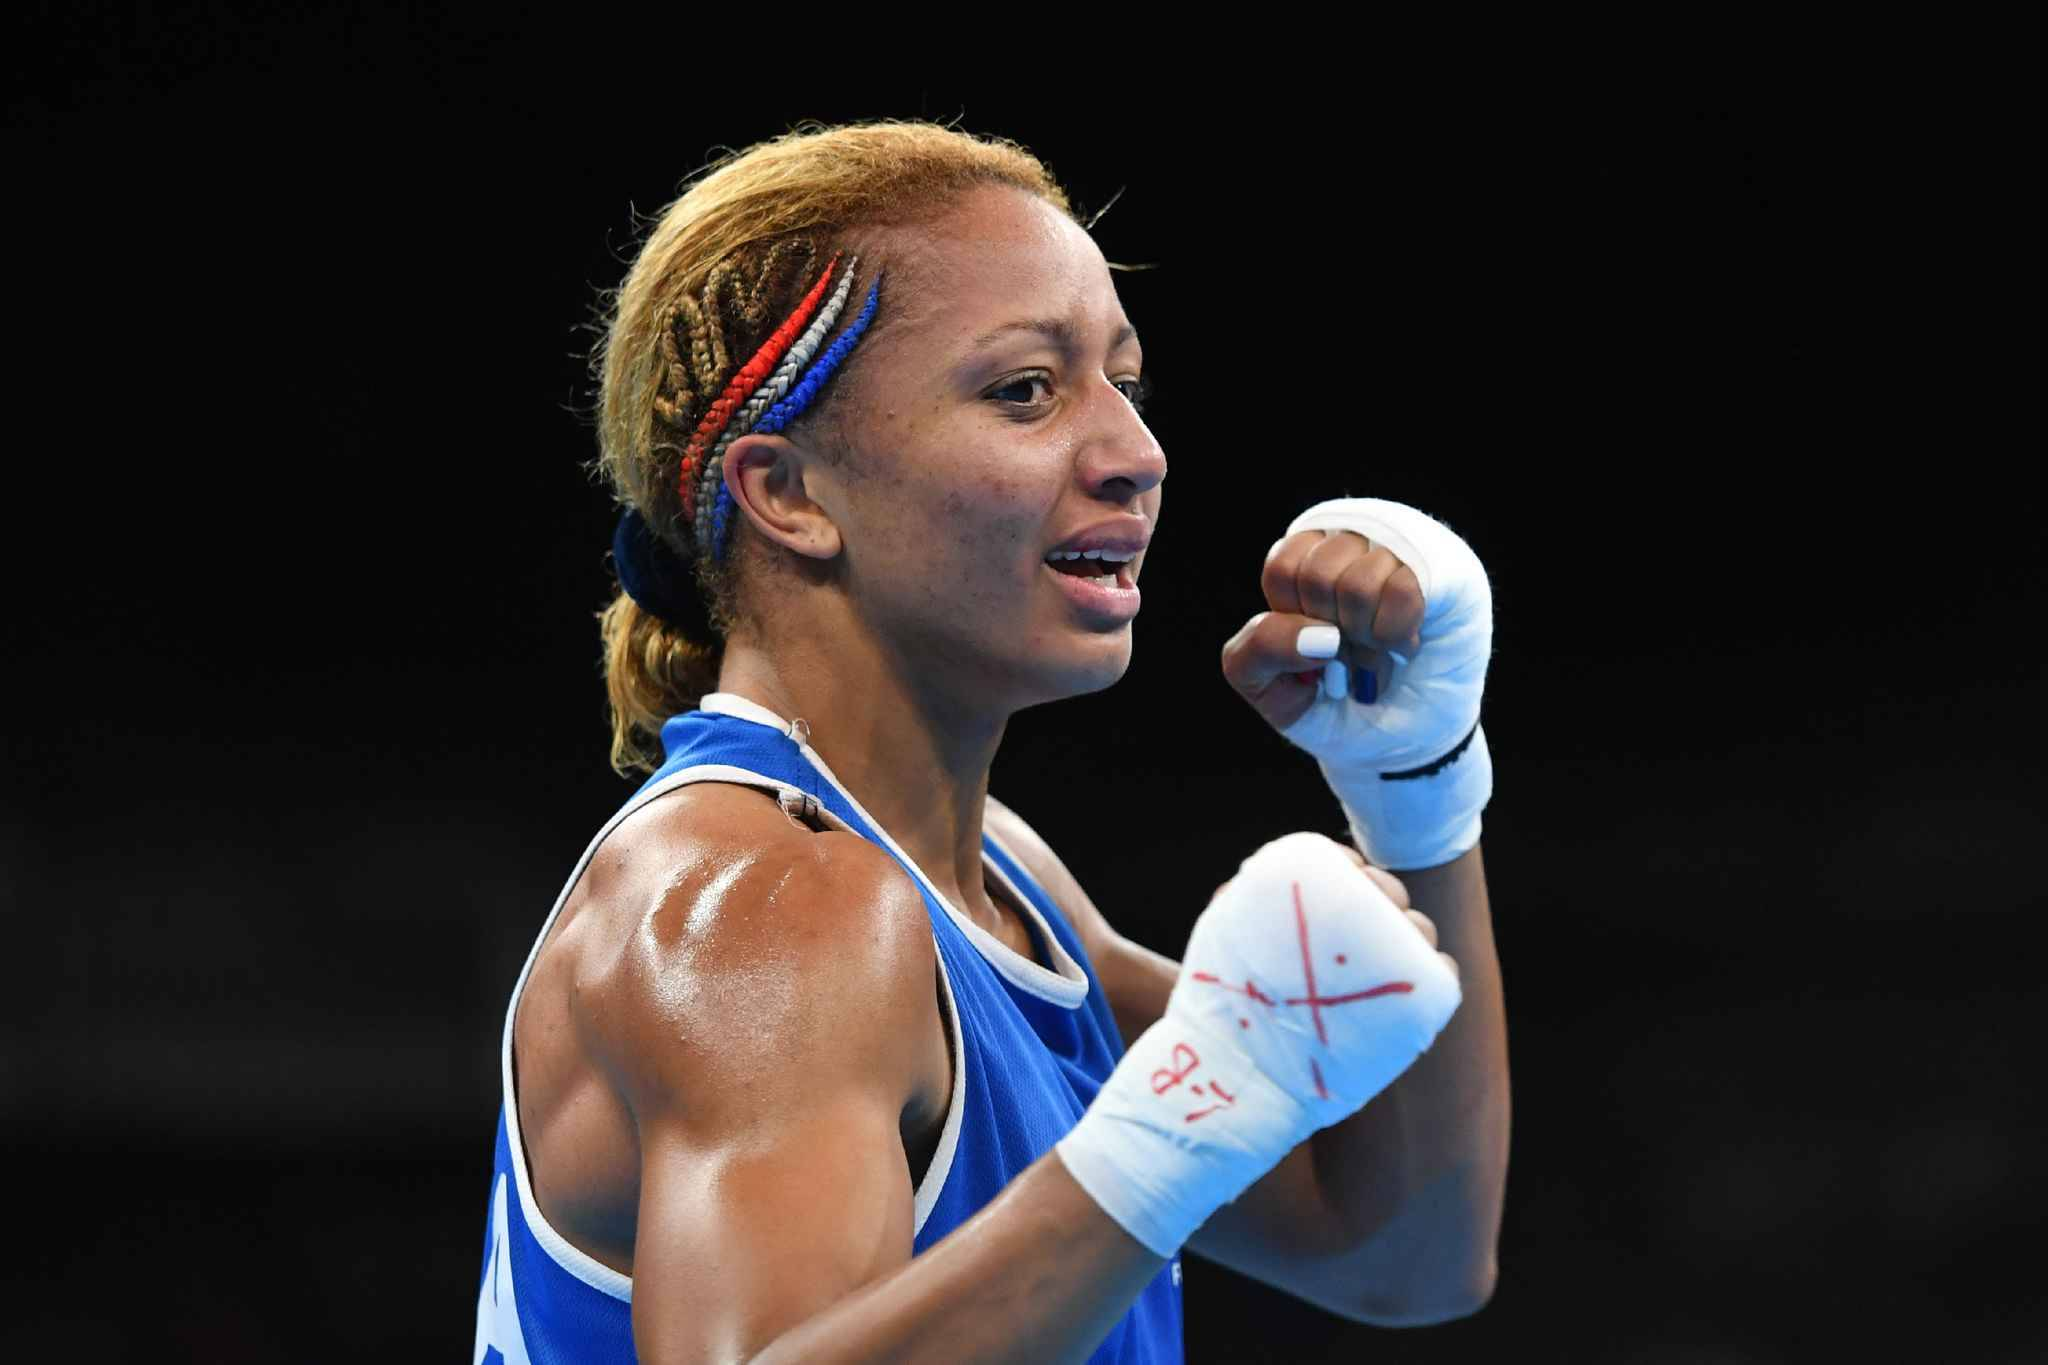 En direct jo 2016 enfin de l 39 or pour la france en boxe for La belle equipe boxe